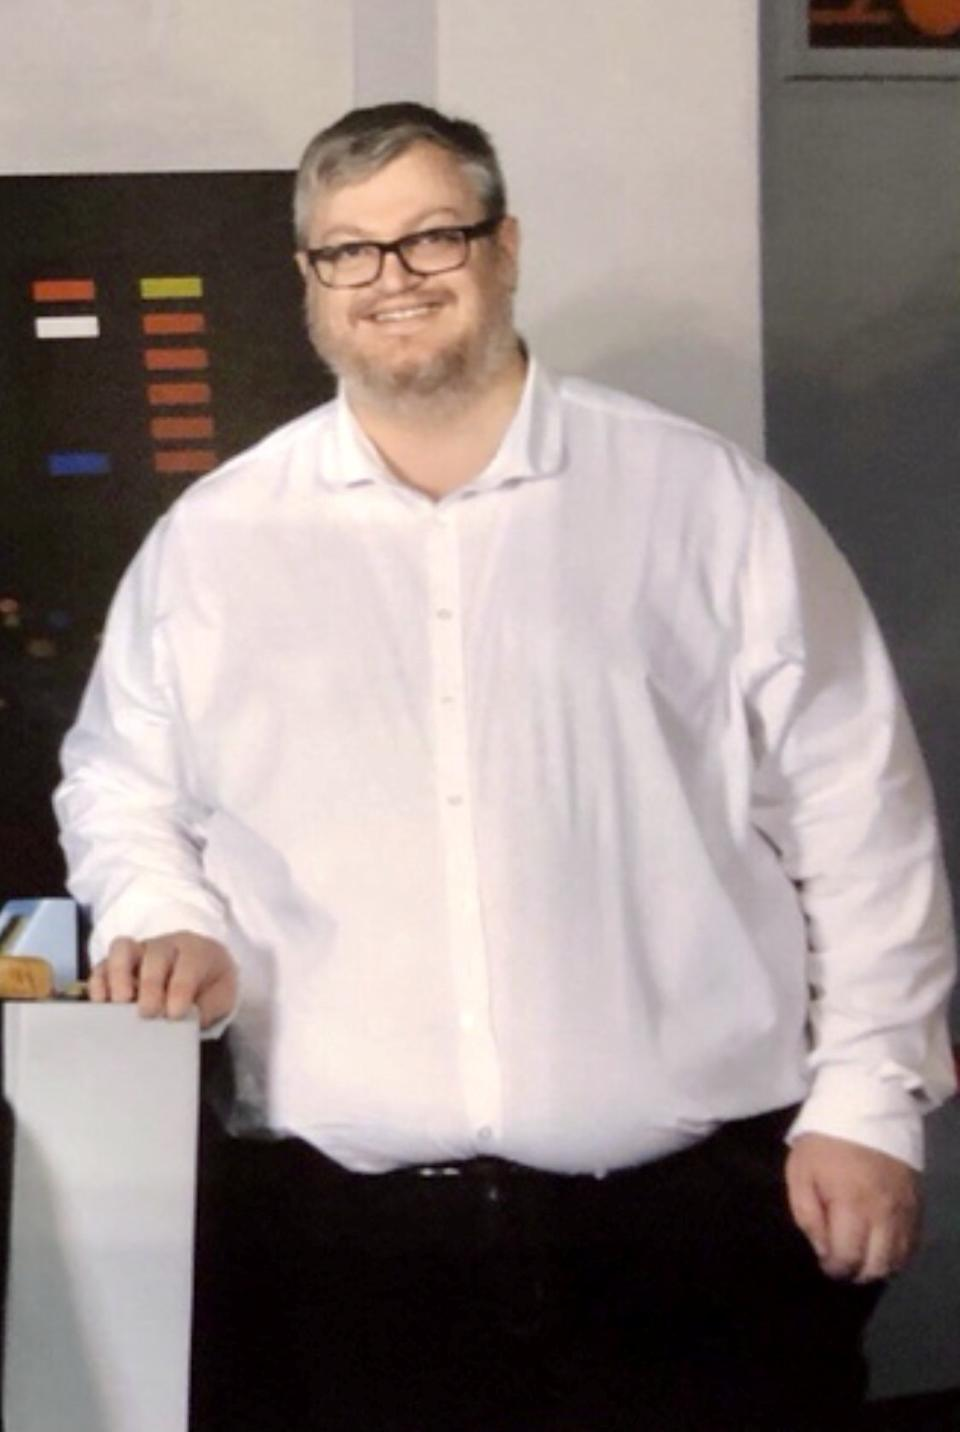 Martin Hannis before his weight loss. (SWNS)